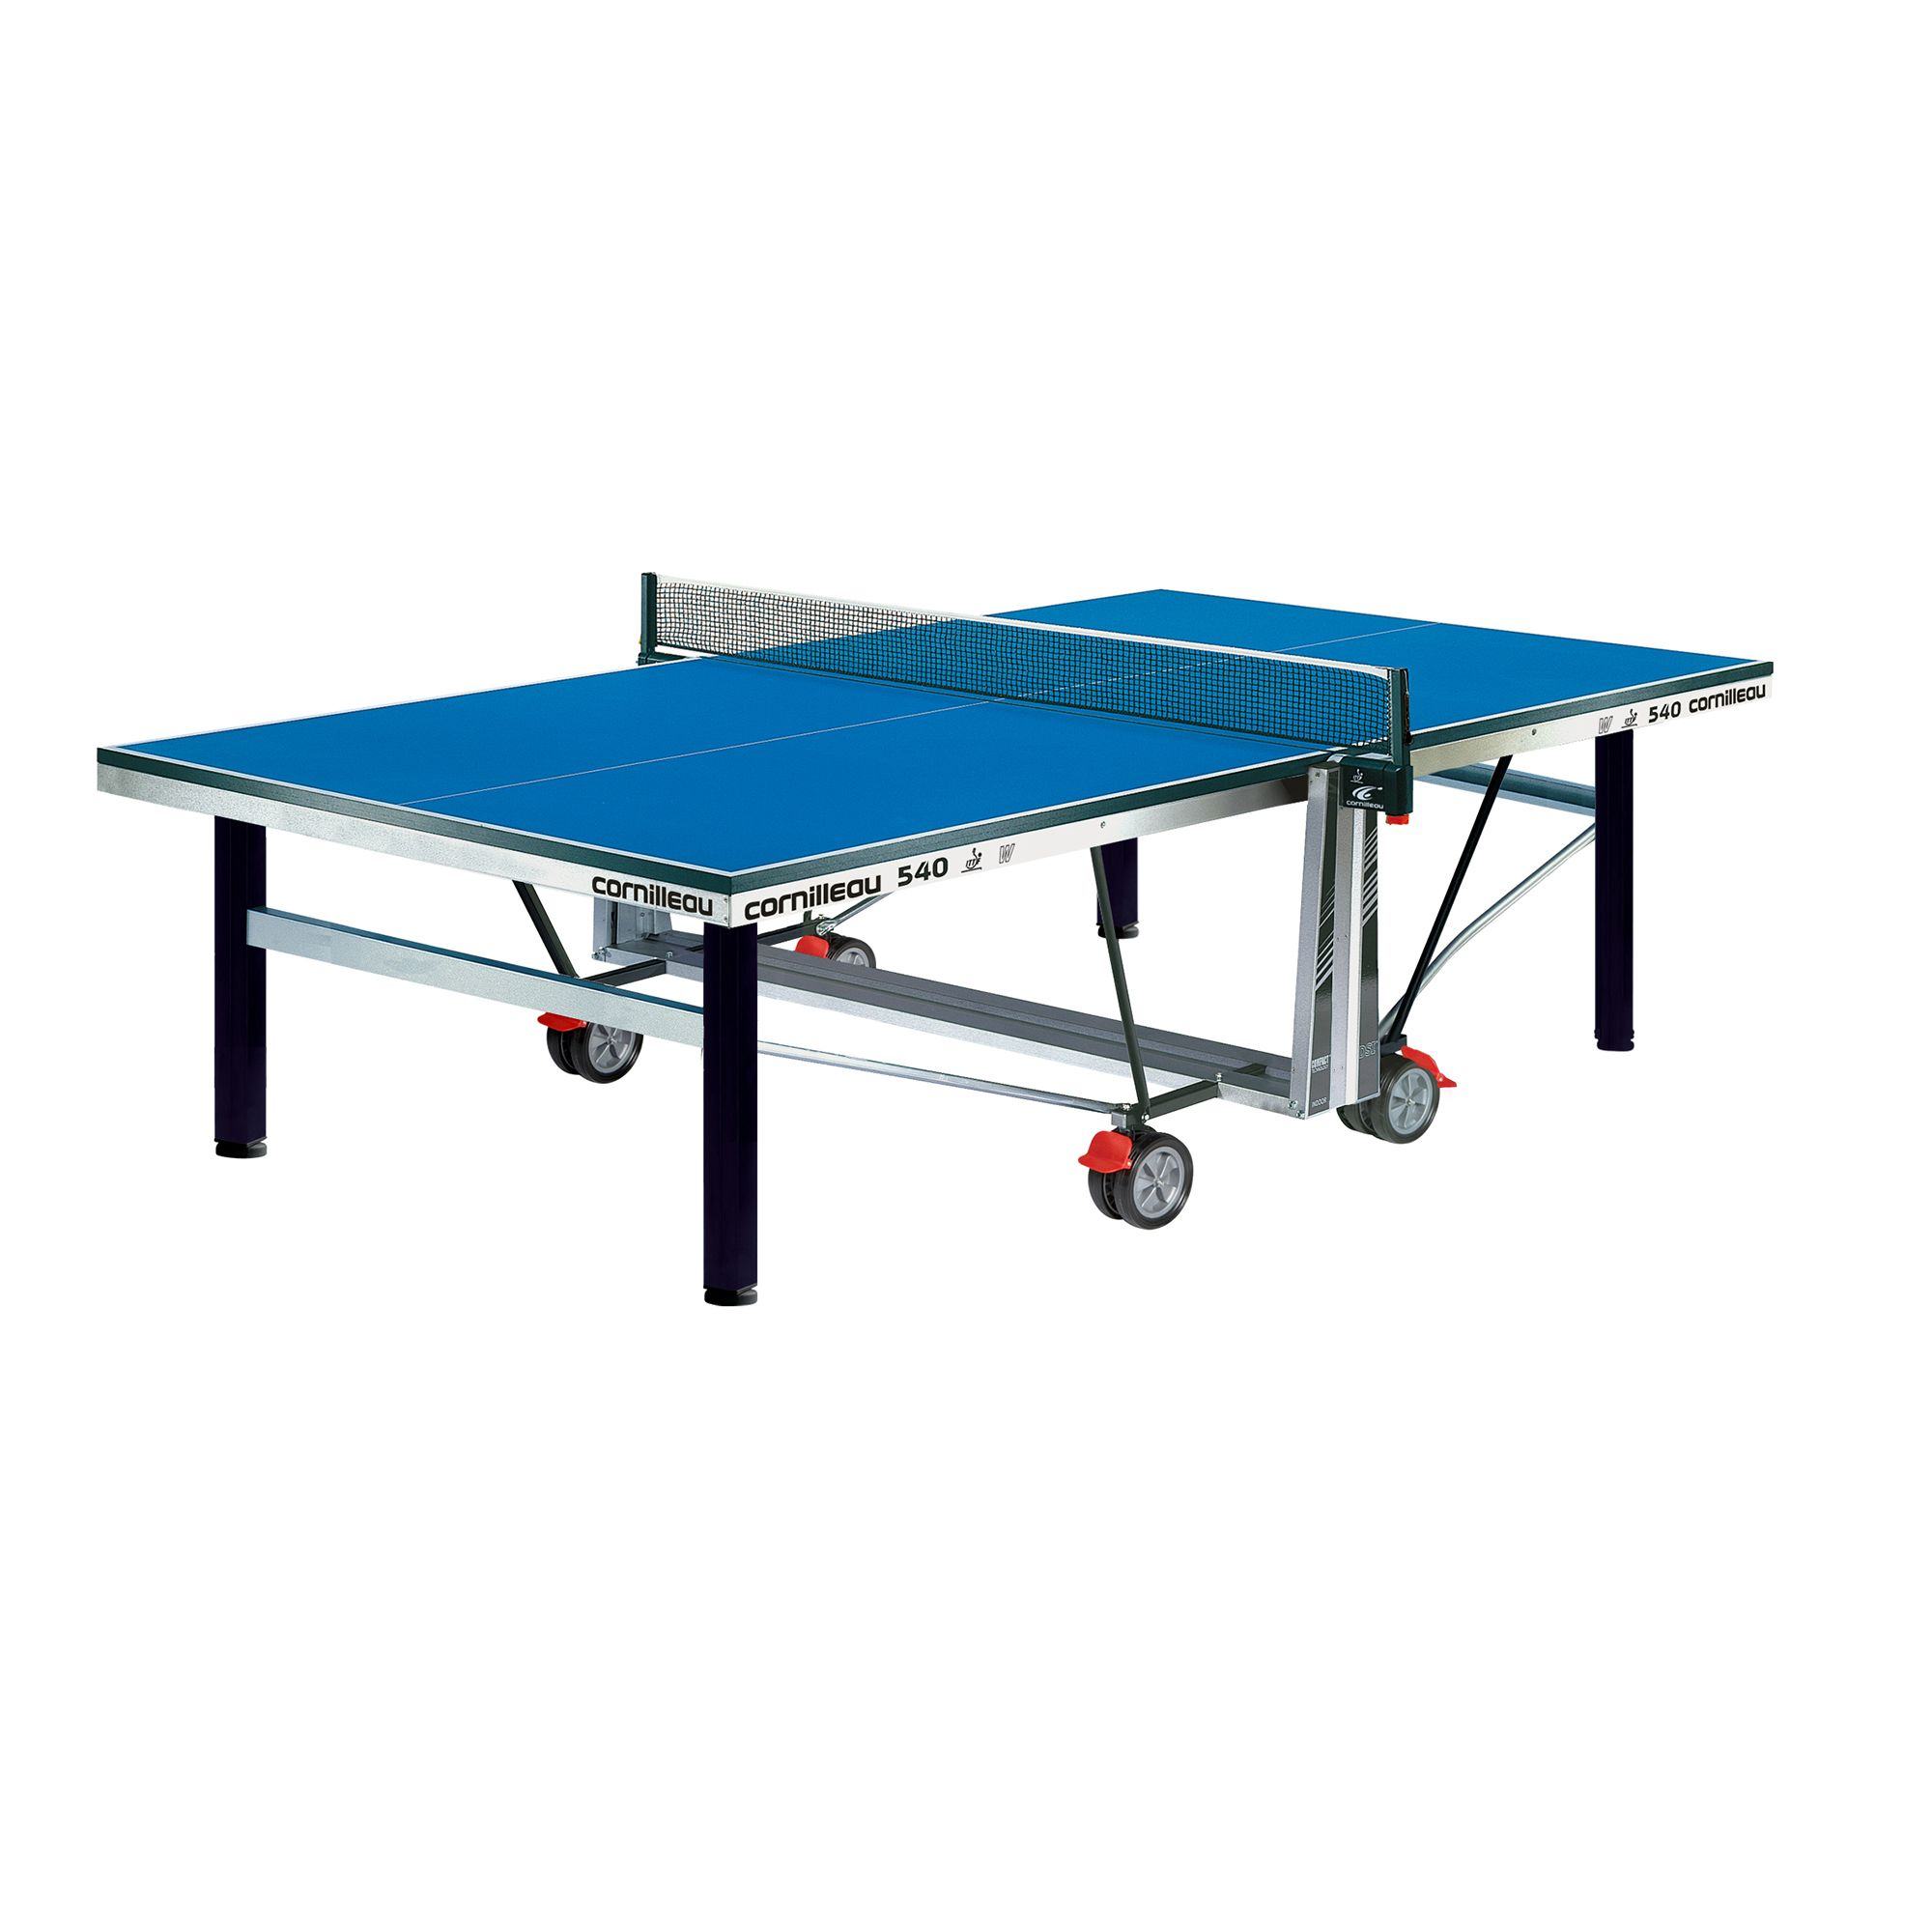 Cornilleau competition 540 rollaway table tennis table - Used outdoor table tennis tables for sale ...